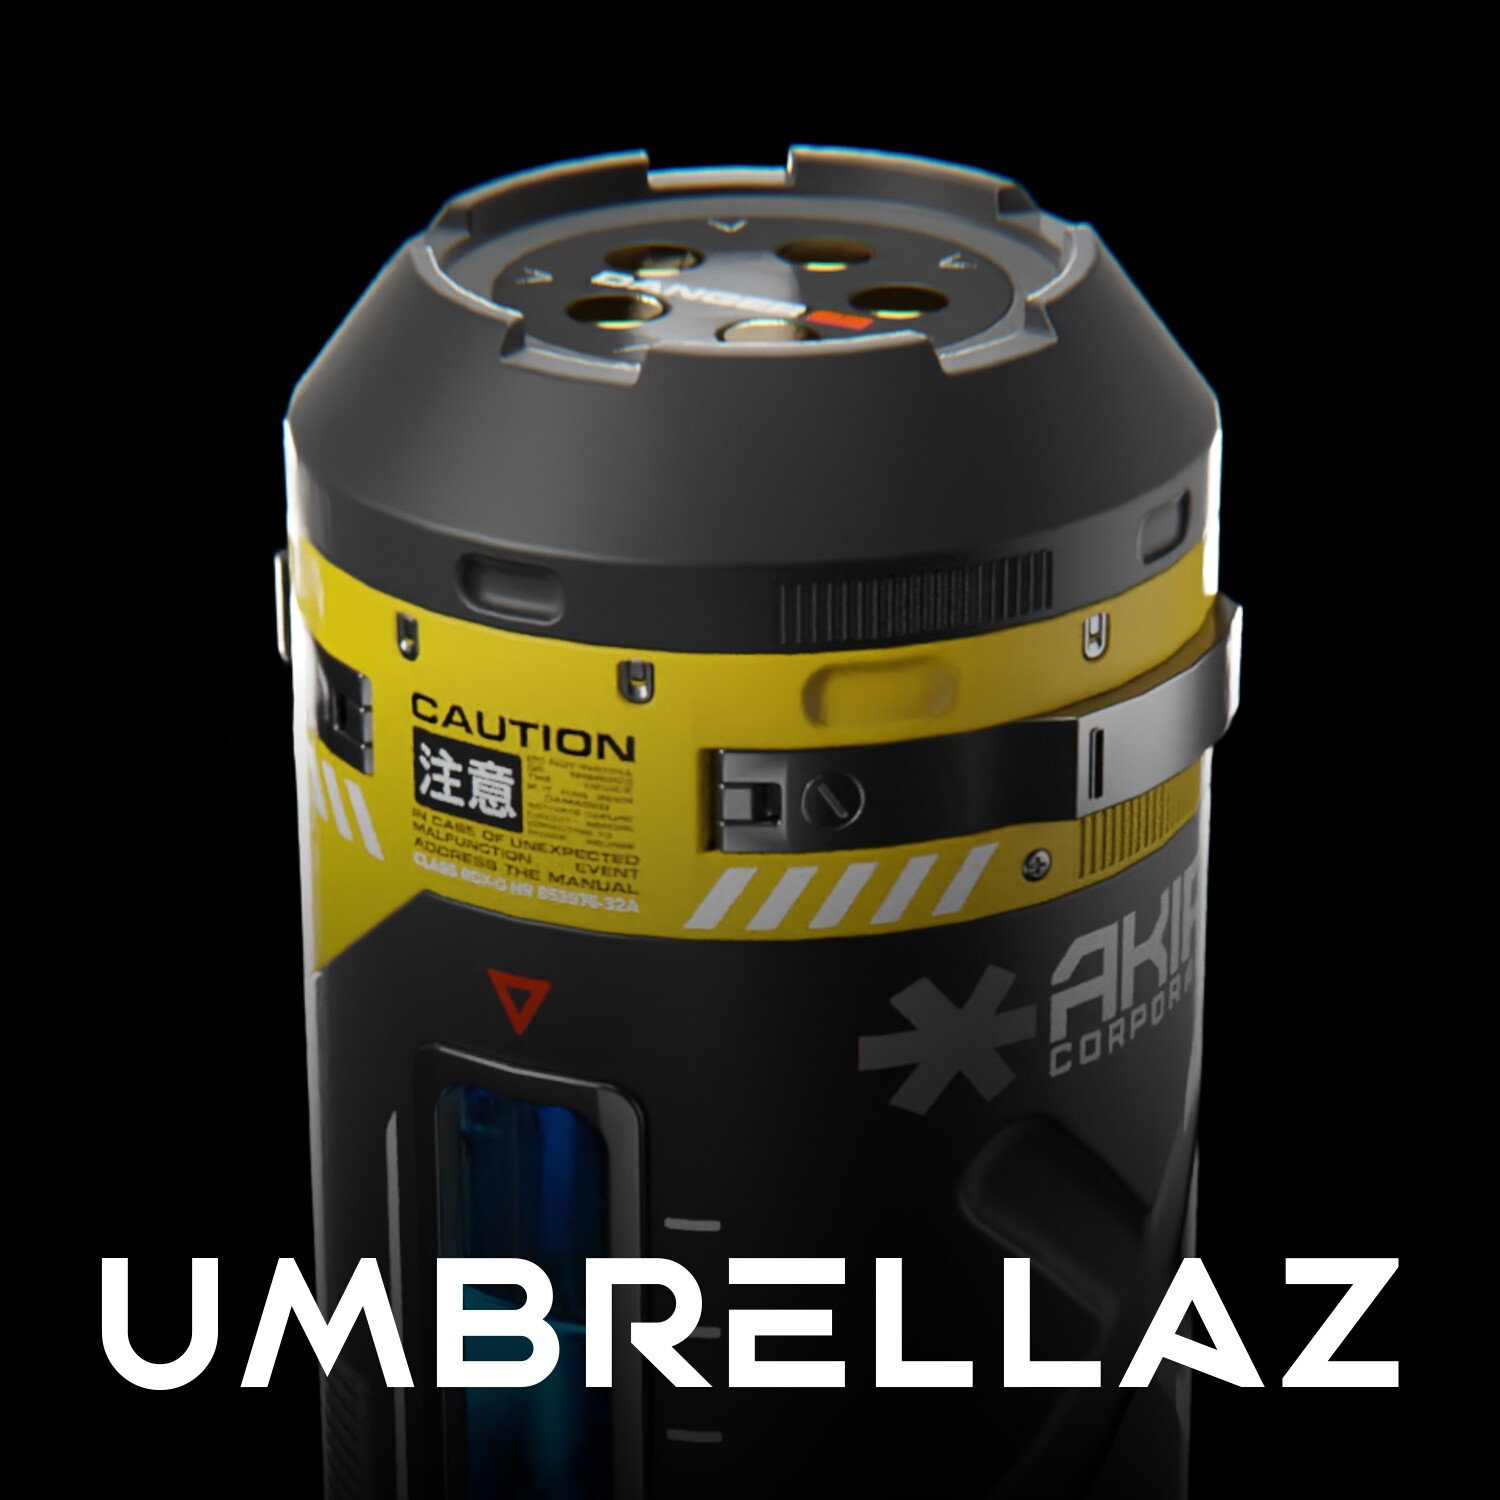 UMBRELLAz - Universal Type. Battery 01